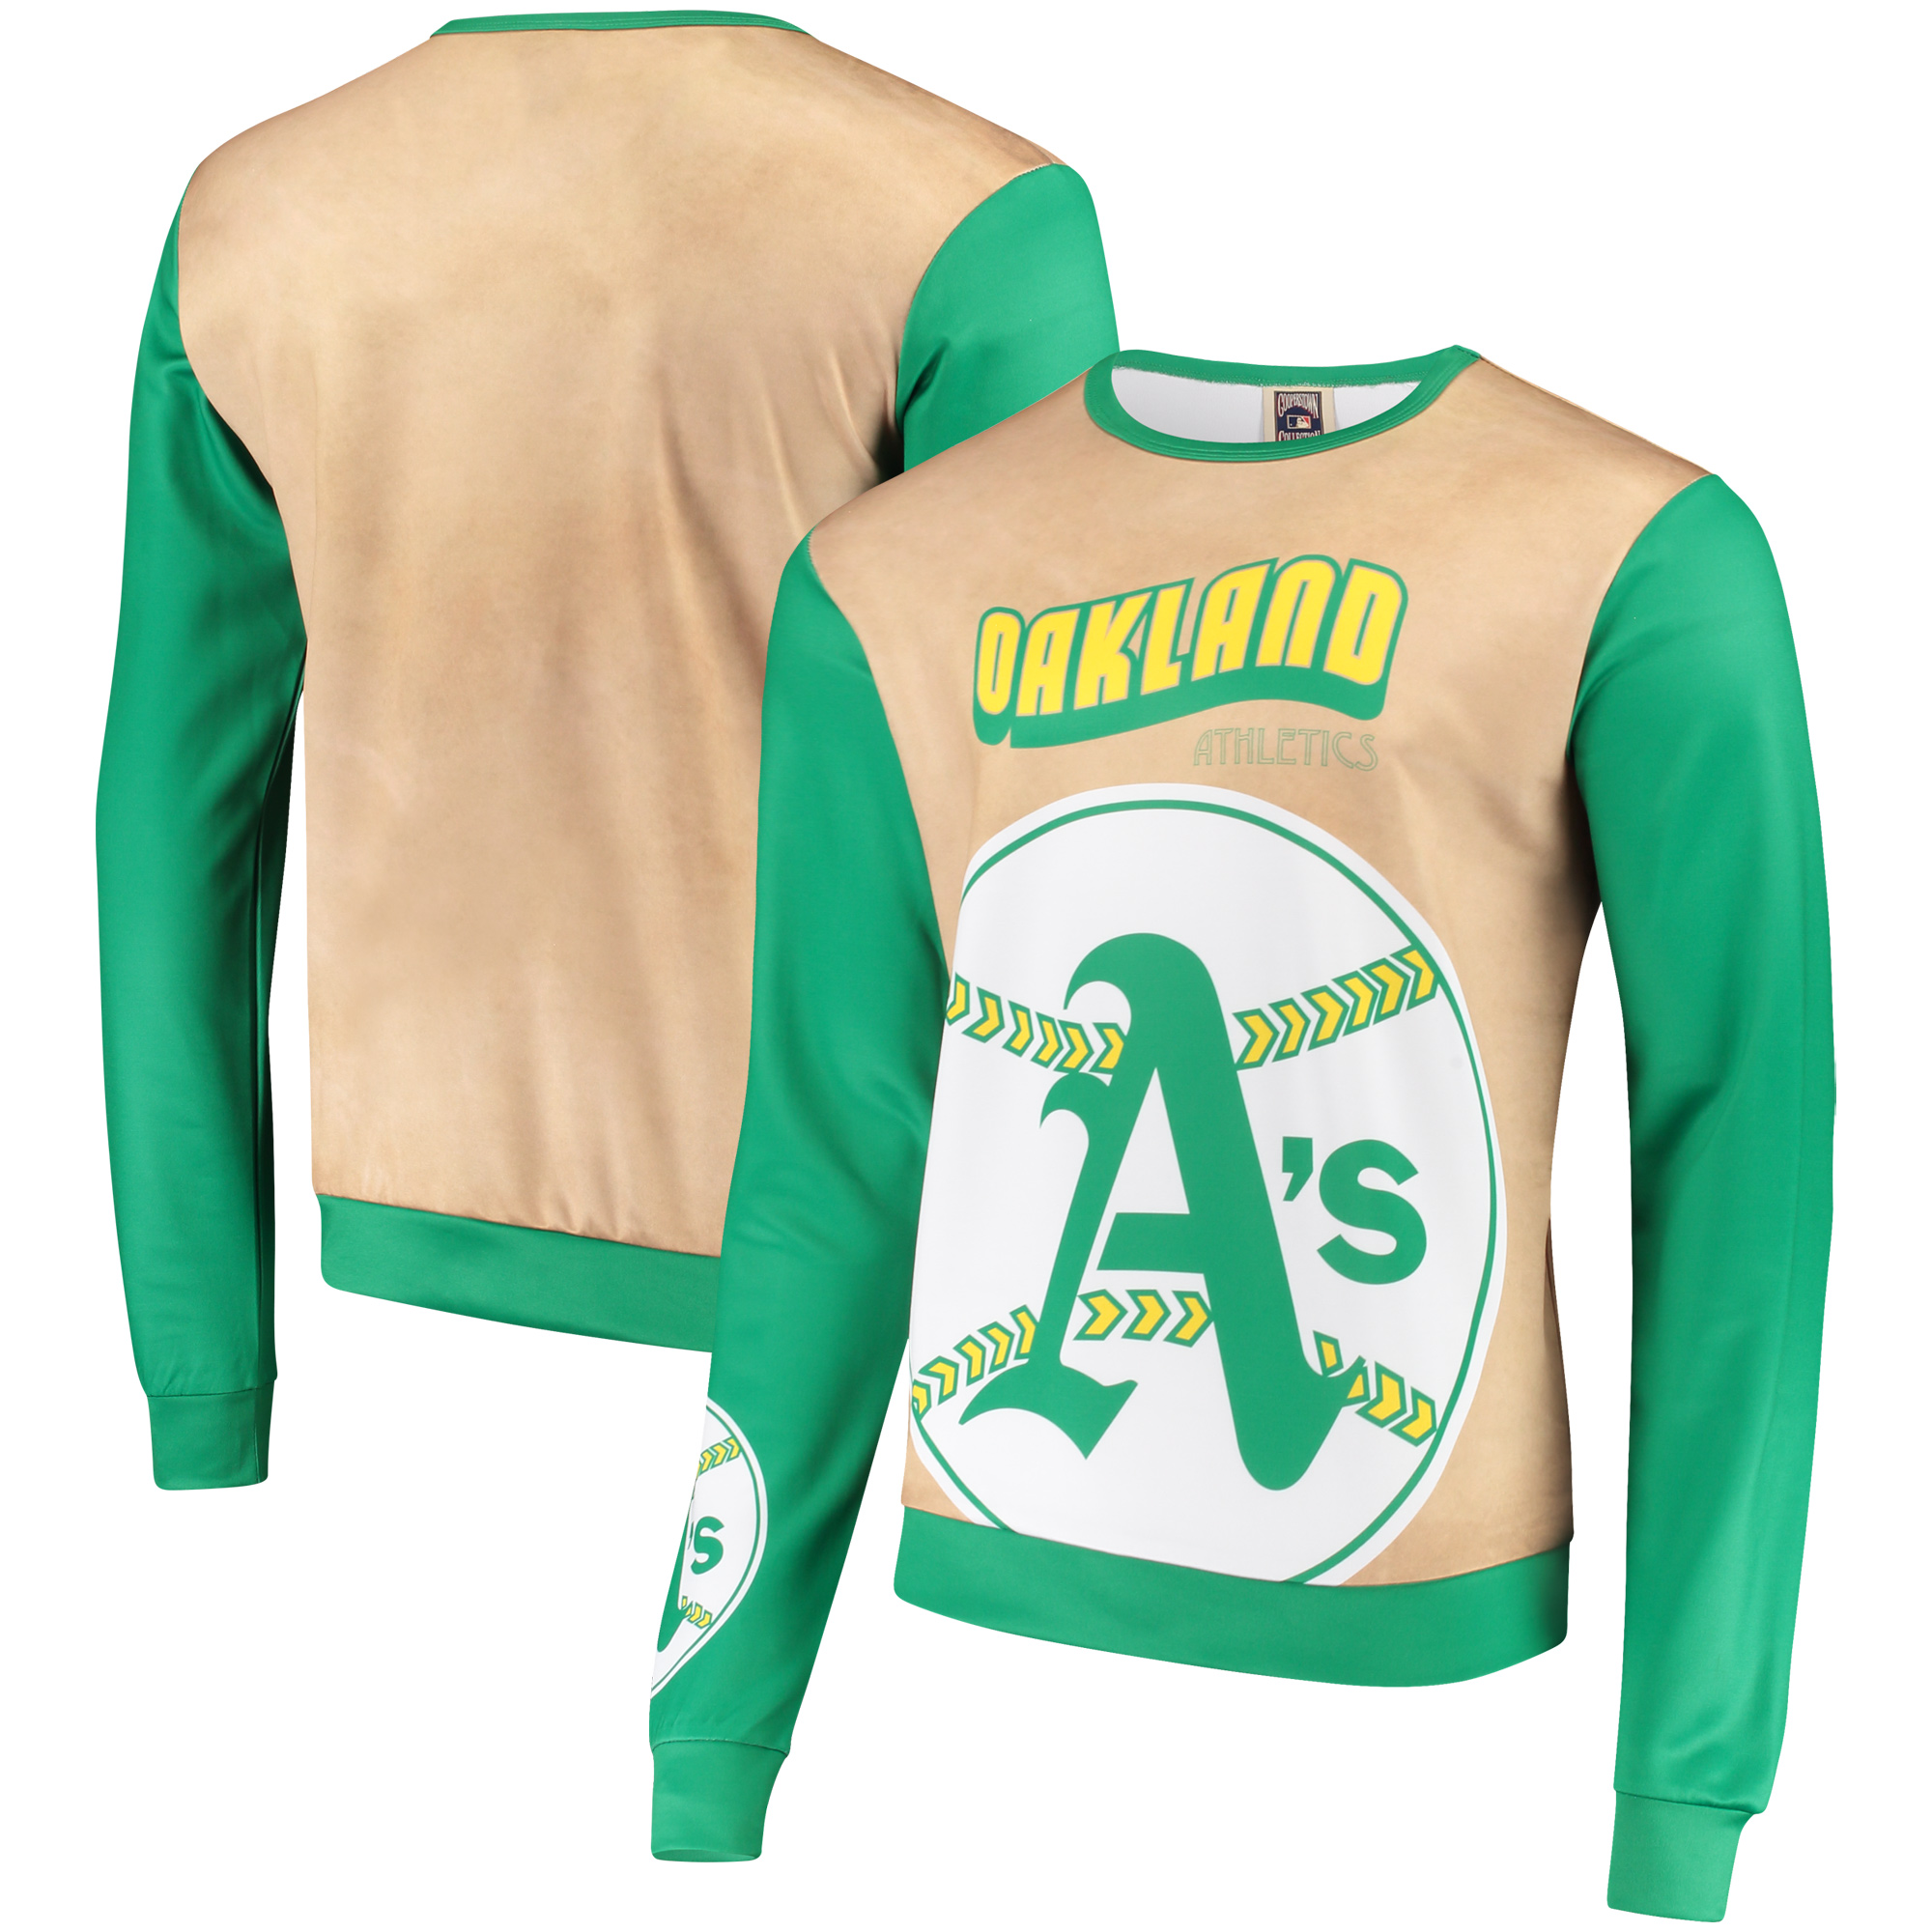 Oakland Athletics Sublimated Crew Neck Sweater - Tan/Green